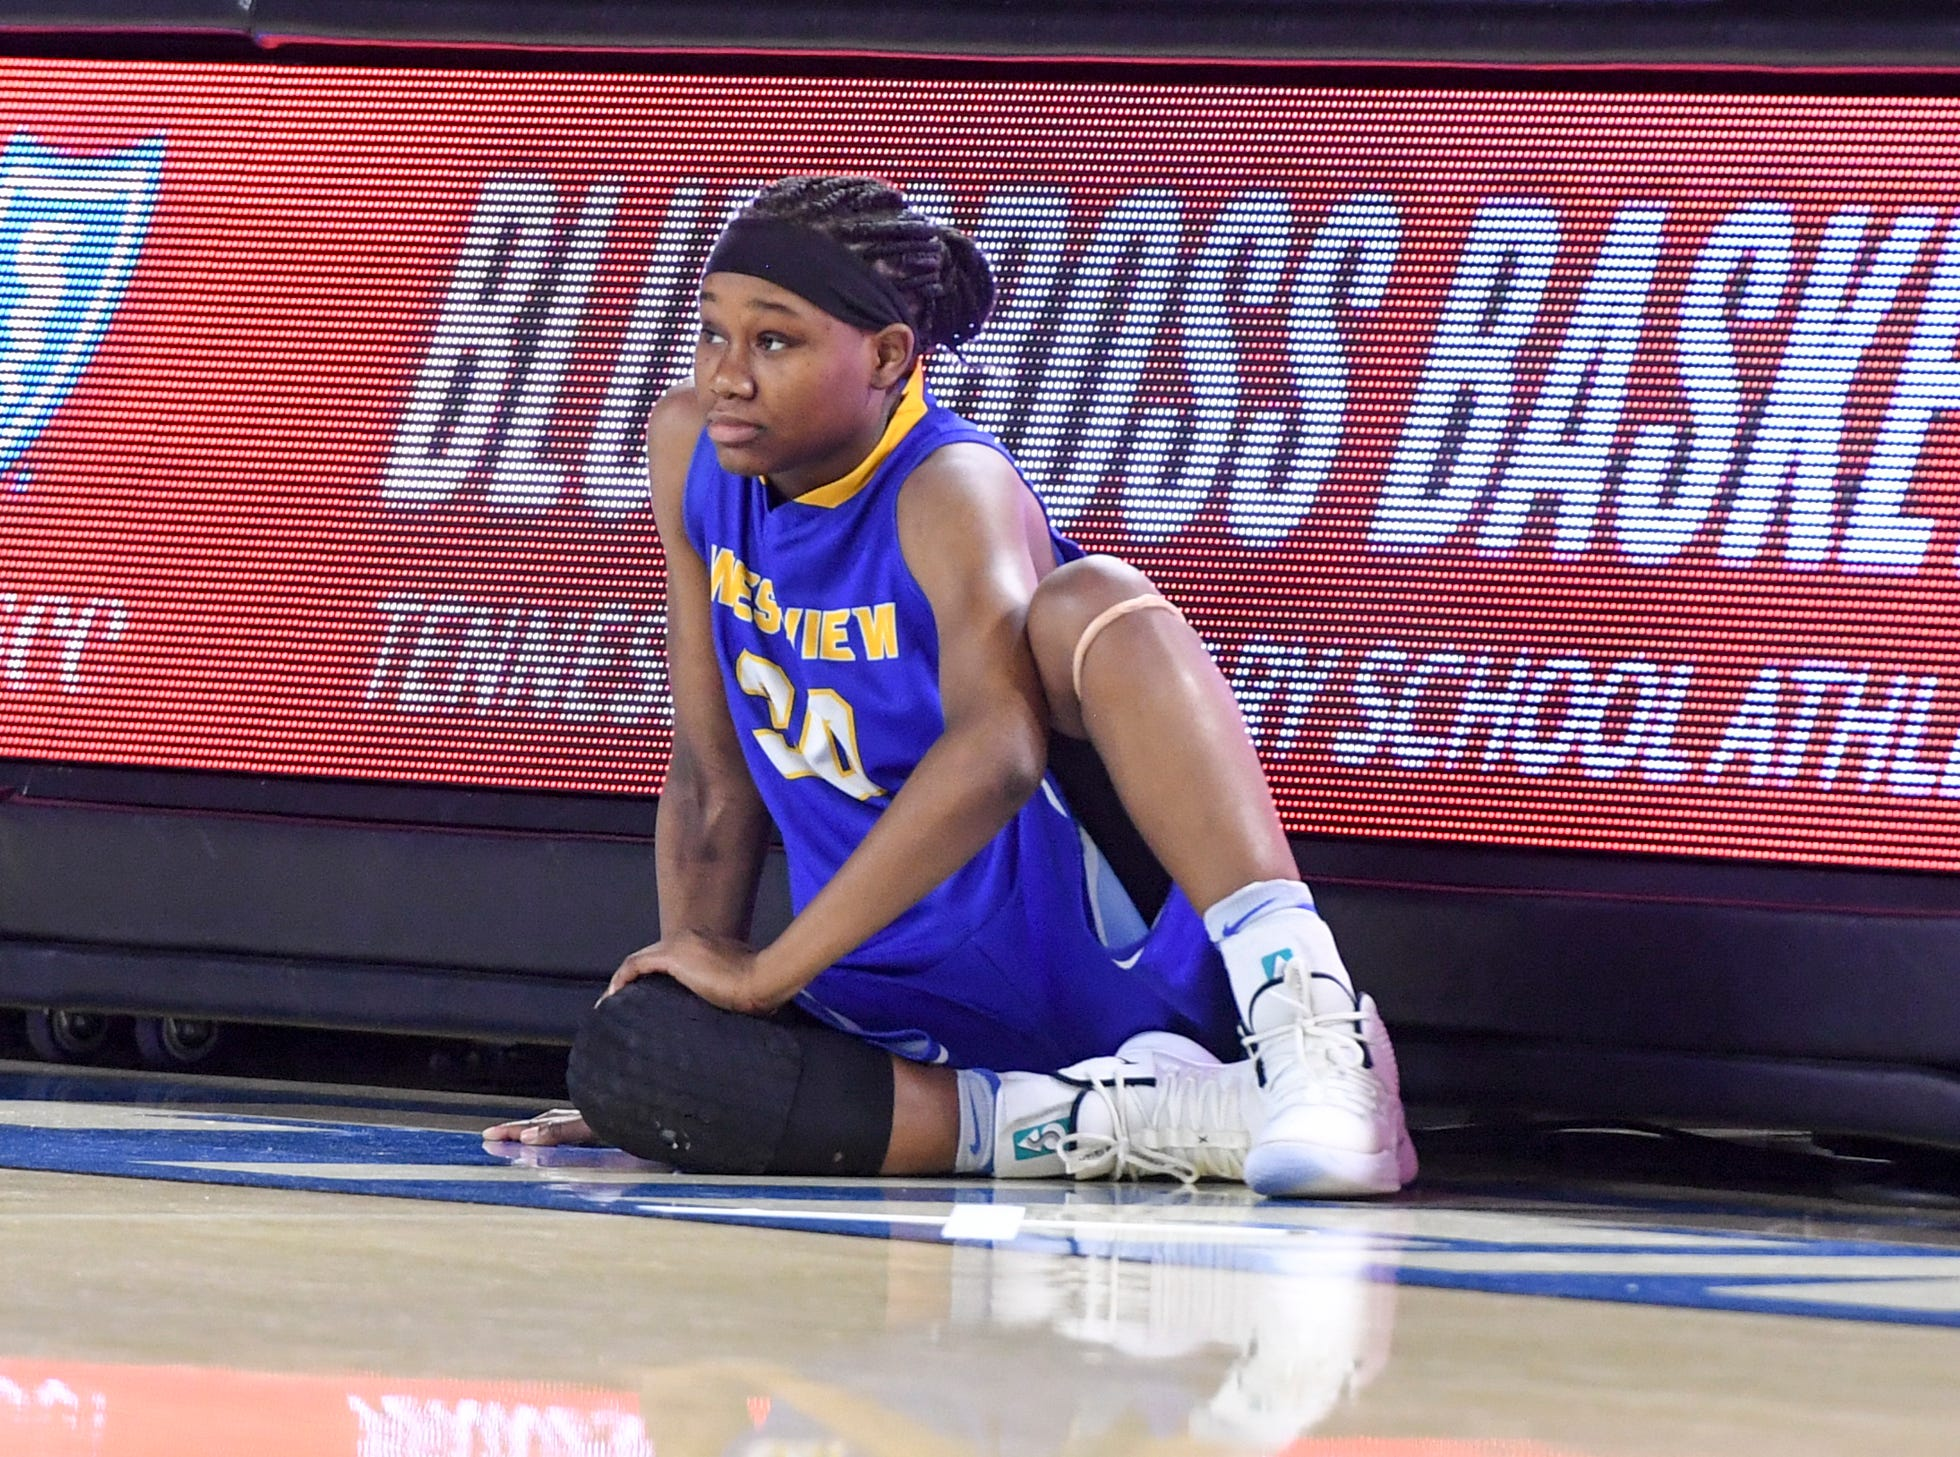 Westview's Tiara Yancey (30) waits at the scores table to be substituted in during their Class AA championship game against Cheatham County, Saturday, March 9, 2019, in Murfreesboro.